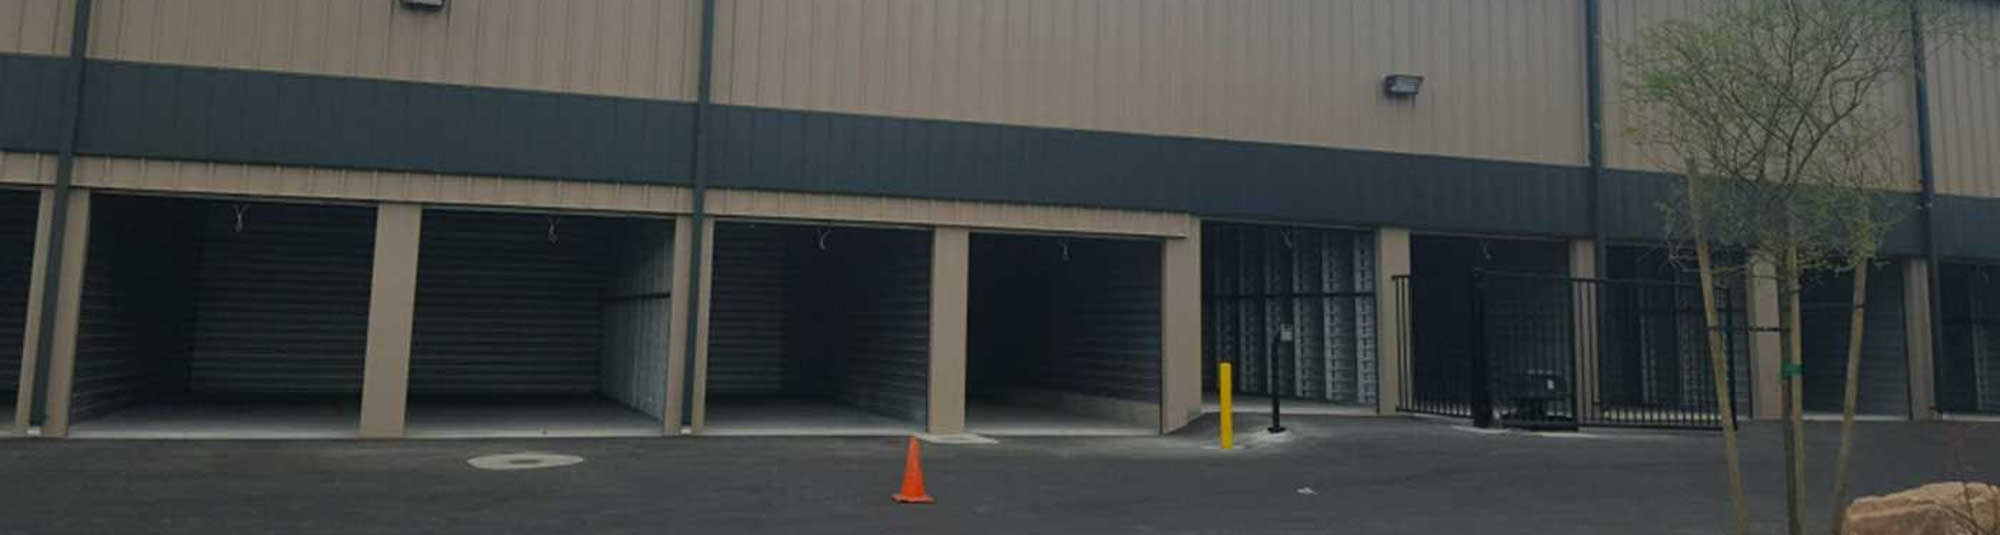 Storage units at Towne Storage in Henderson, Nevada